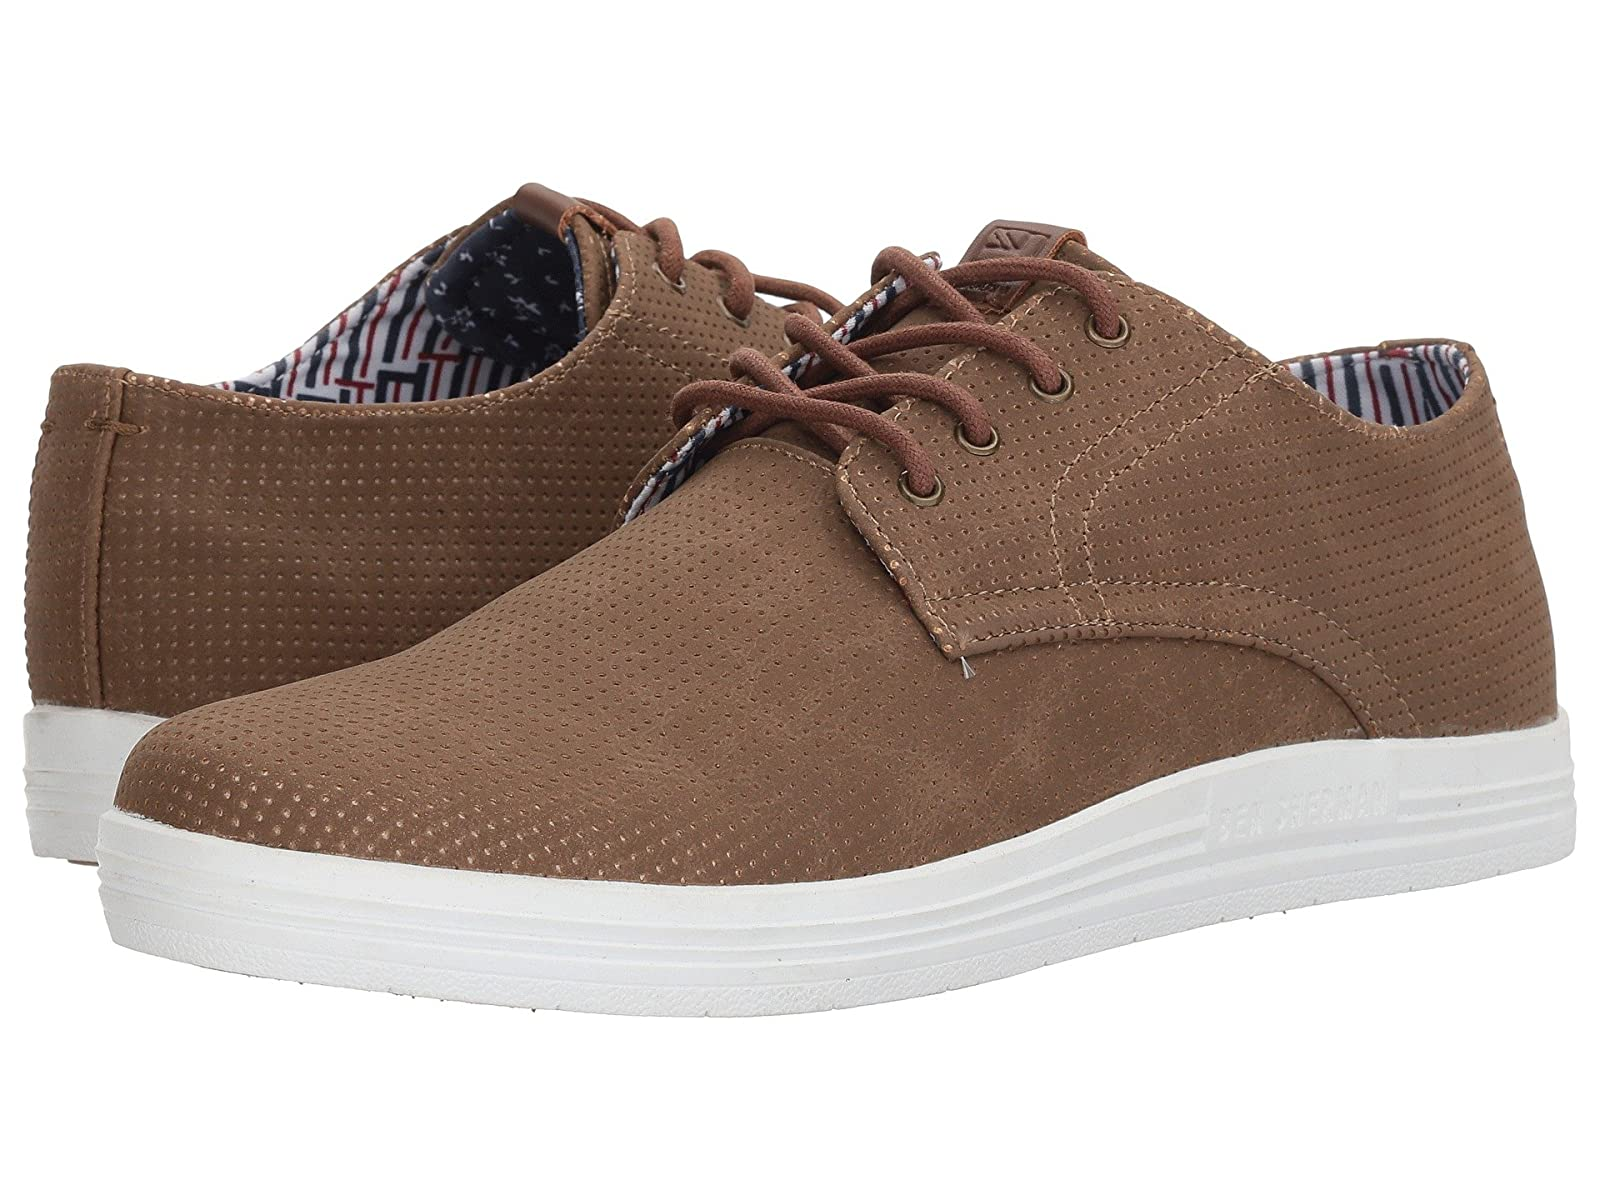 Ben Sherman PaytonAtmospheric grades have affordable shoes